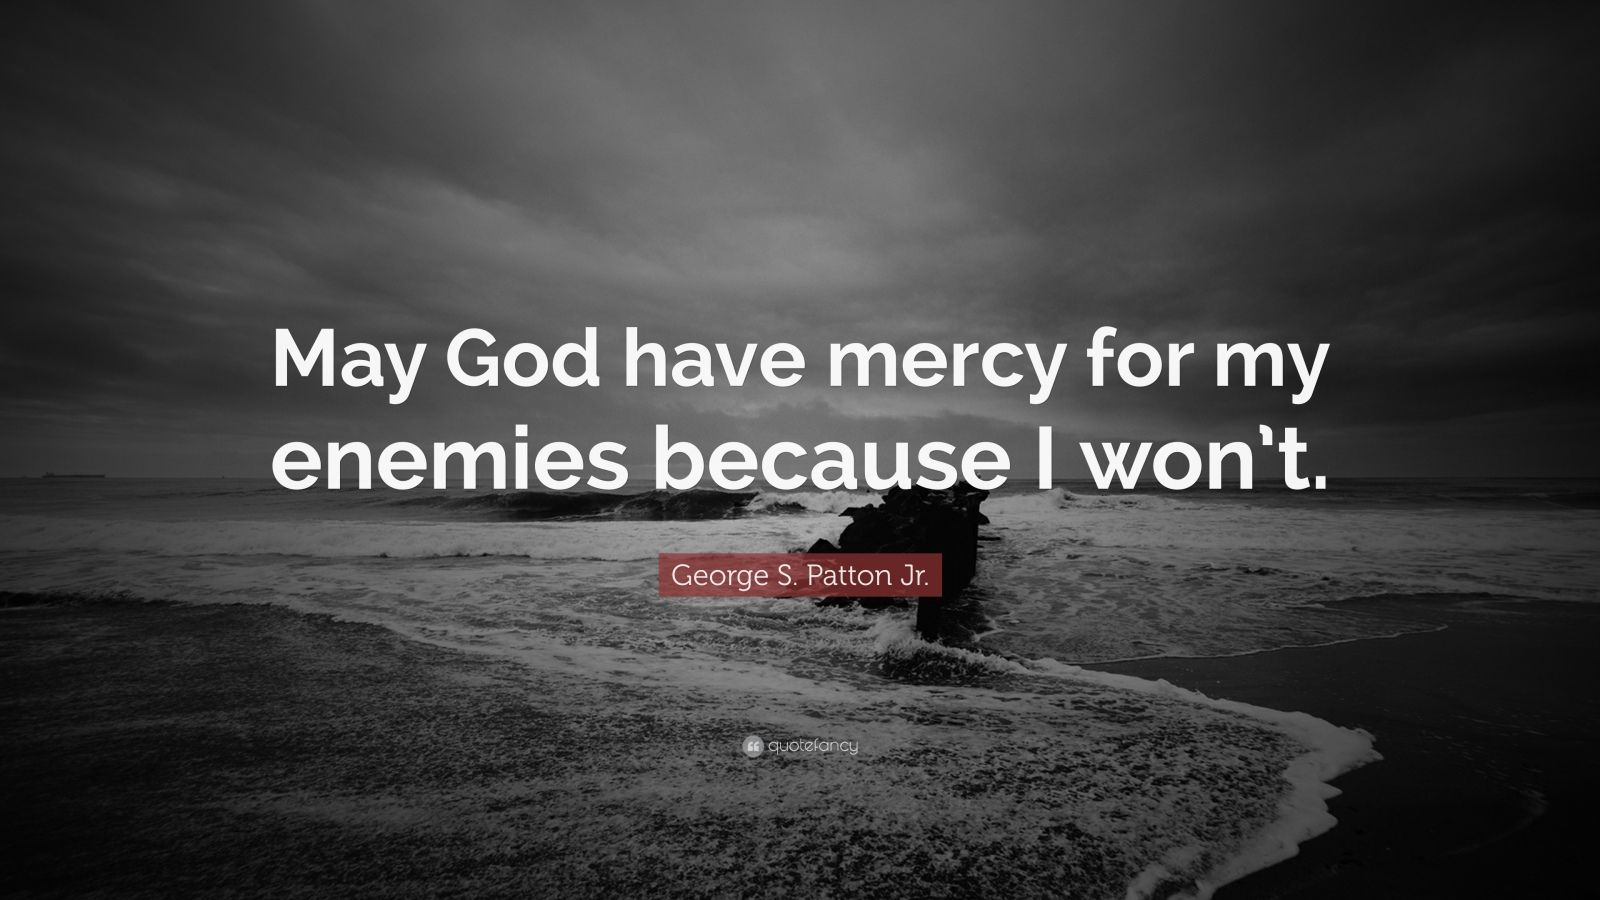 Catholic Quote Wallpaper George S Patton Jr Quote May God Have Mercy For My